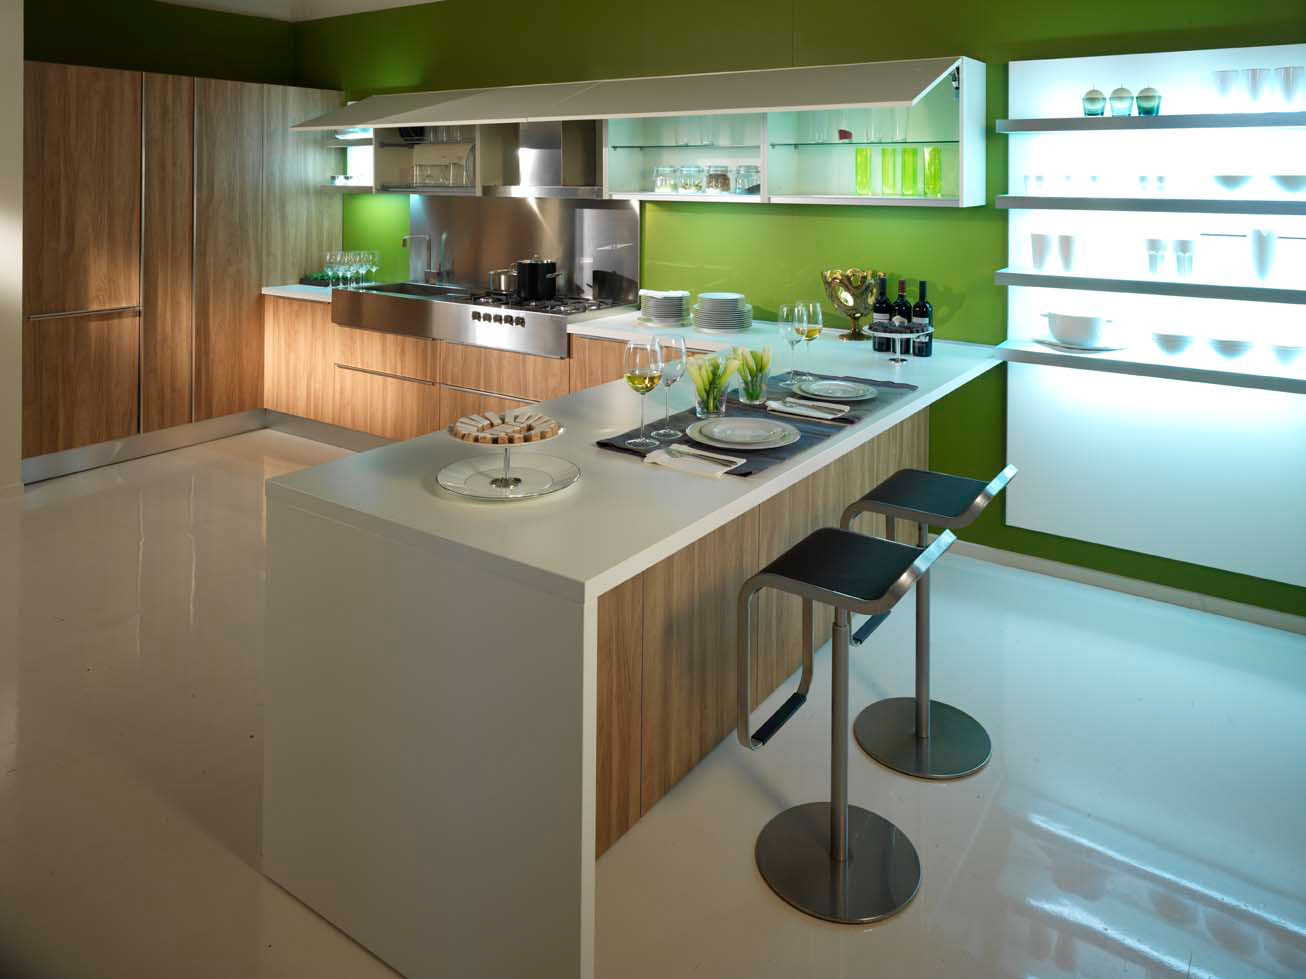 Cuisine en melamine 16 photo de cuisine moderne design for Cuisines contemporaines design